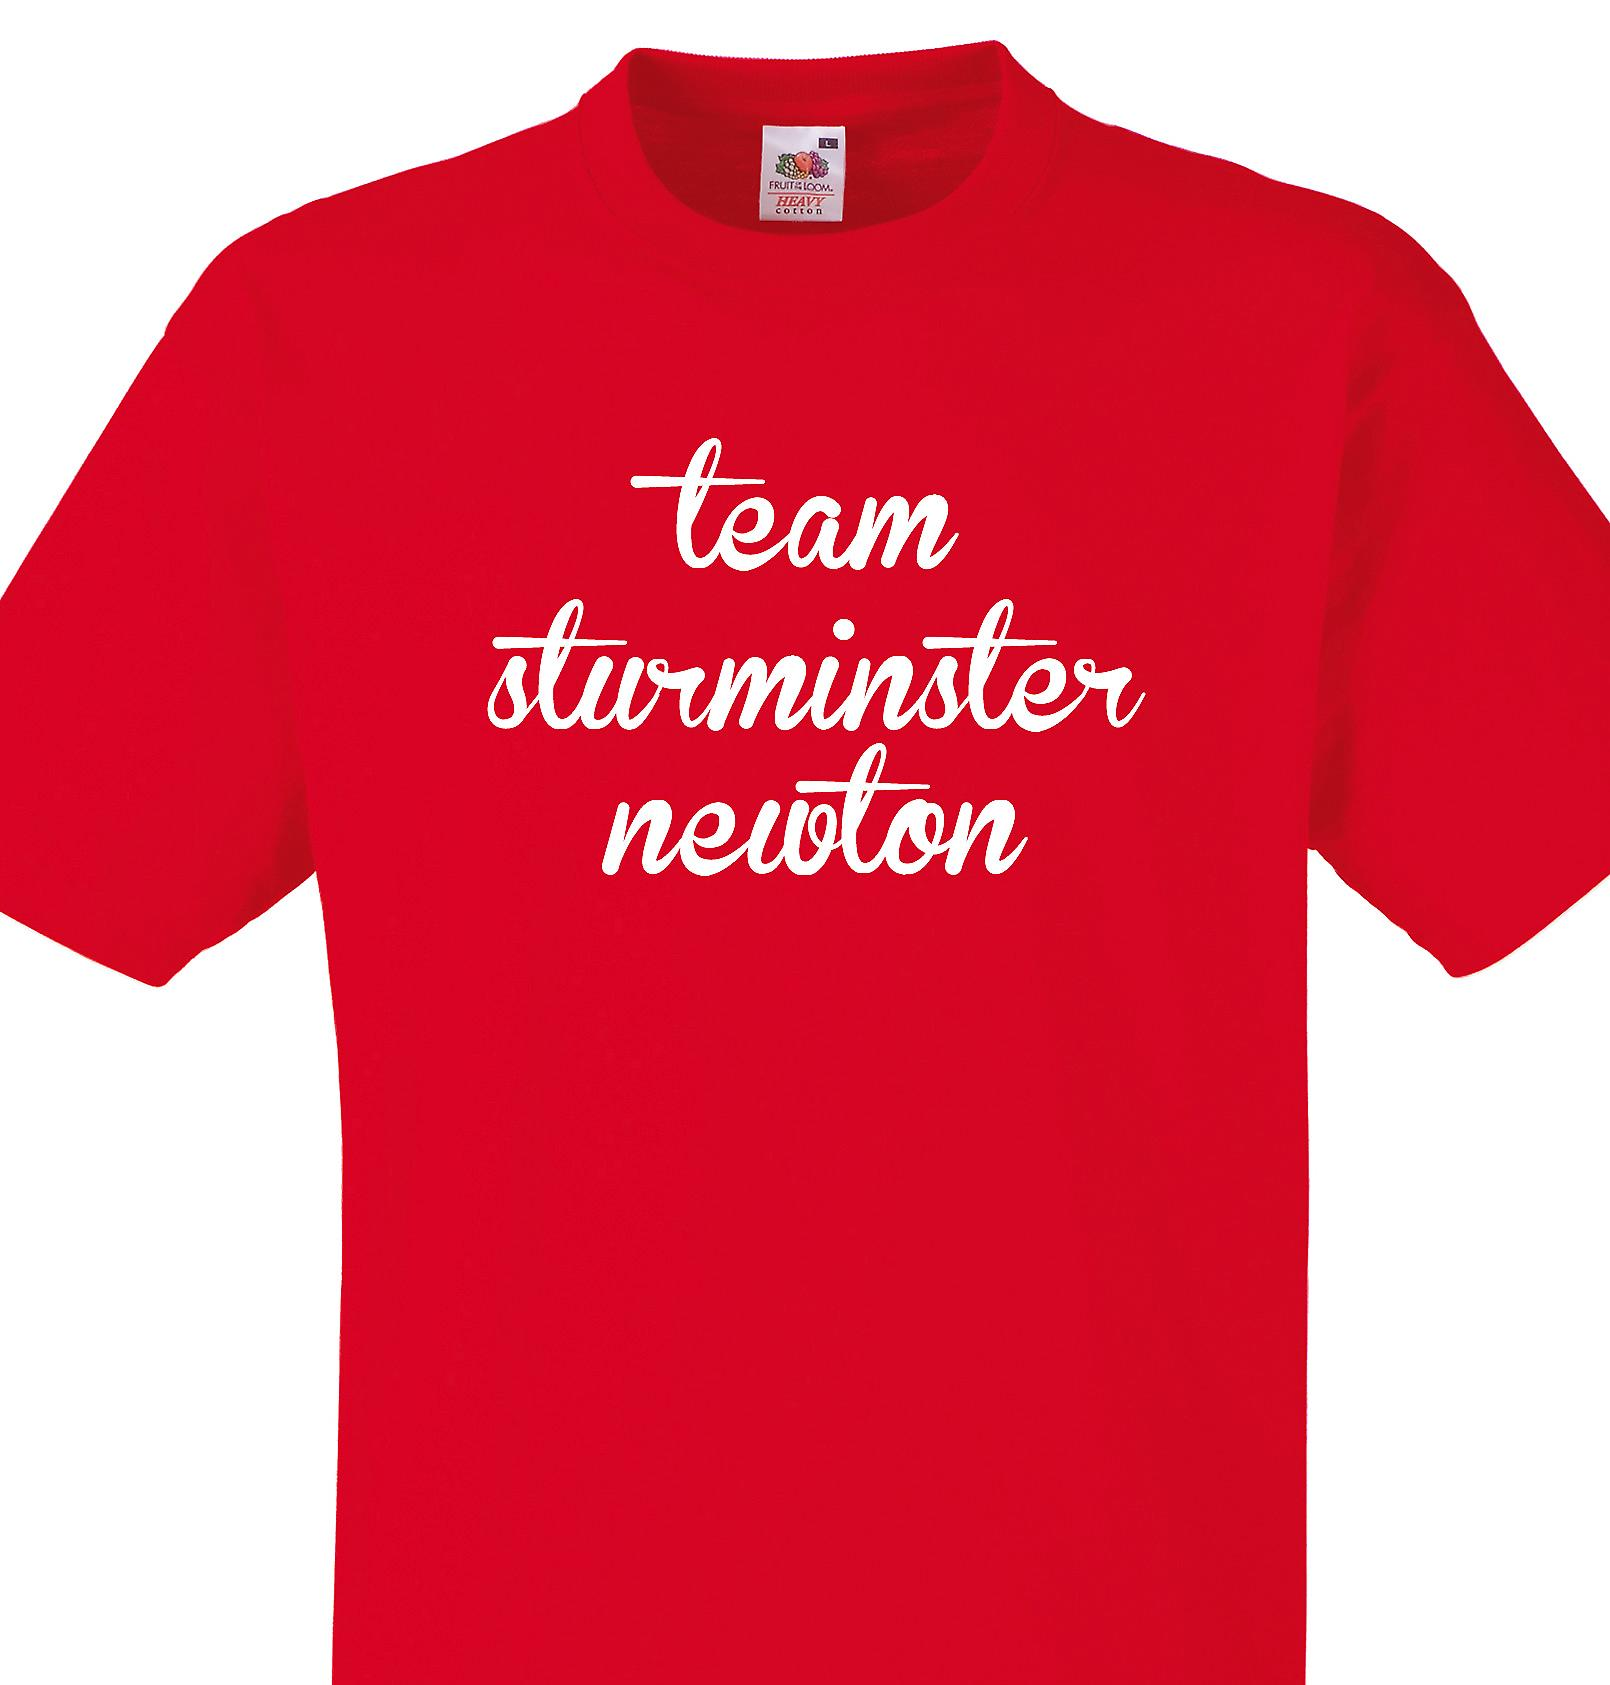 Team Sturminster newton Red T shirt